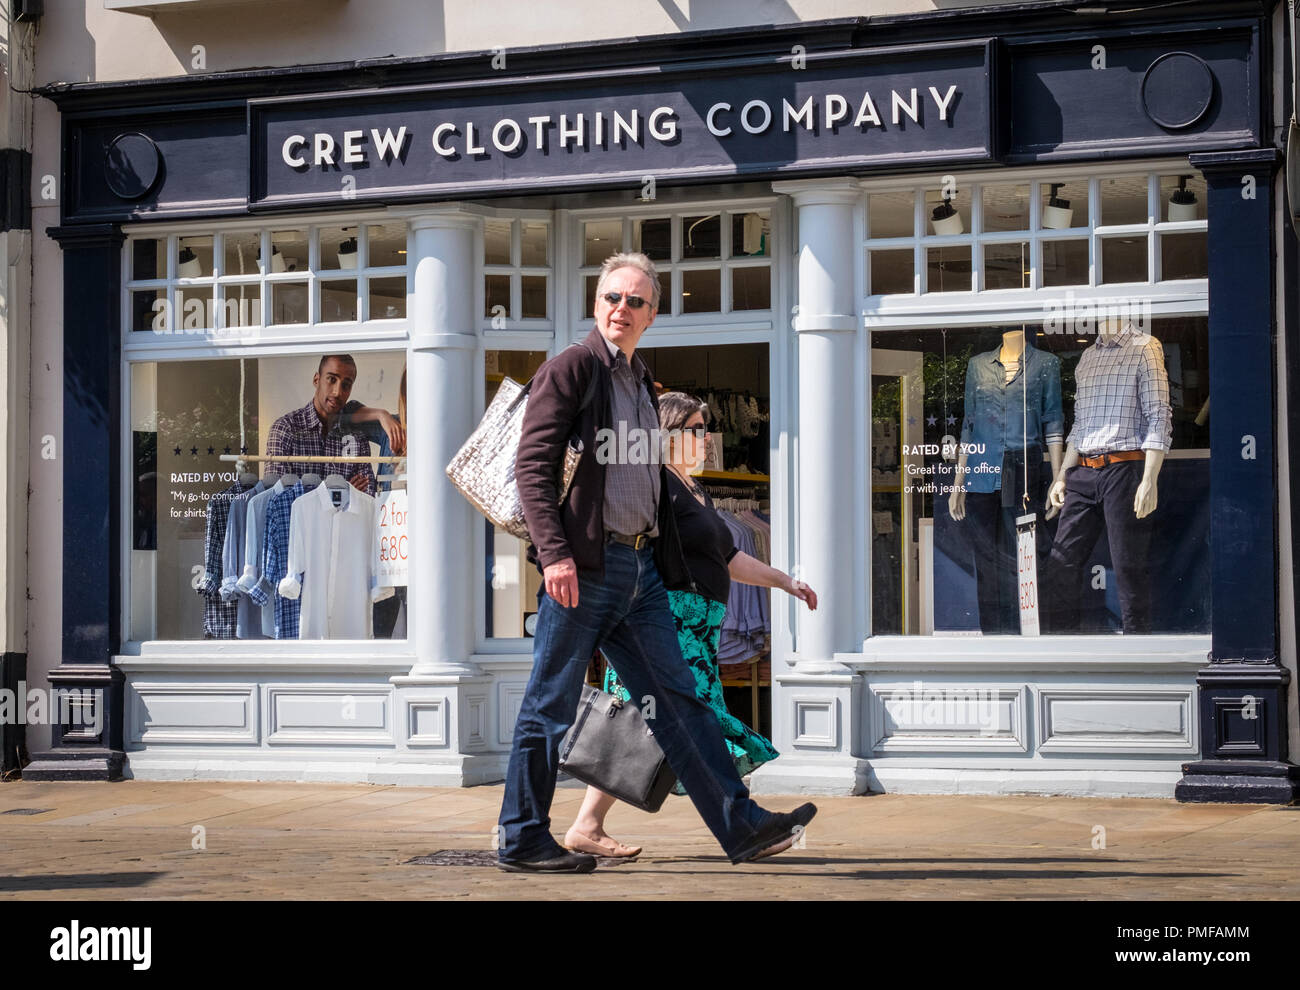 Crew Clothing Company store in Winchester, Hampshire, UK - Stock Image